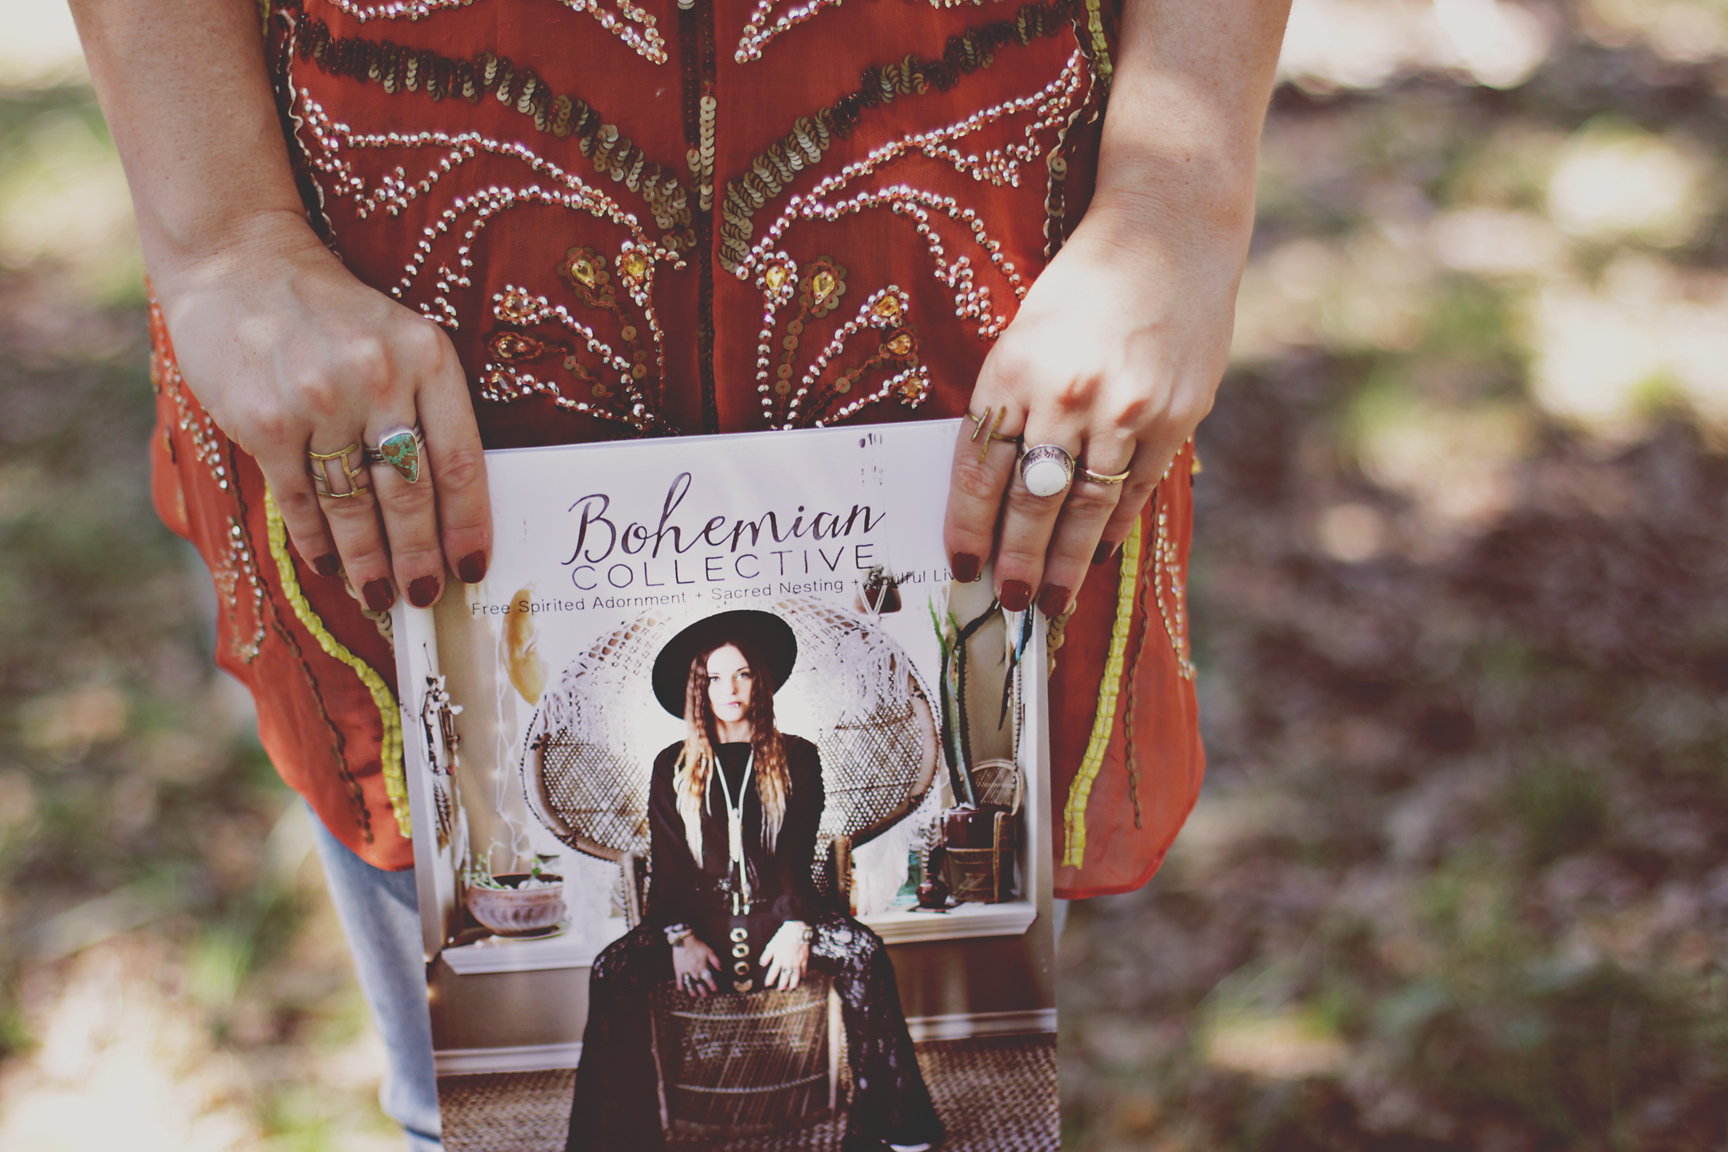 There is a   Celebratory Adornment + Magazine Sneak Peek   over on the Bohemian Collective!